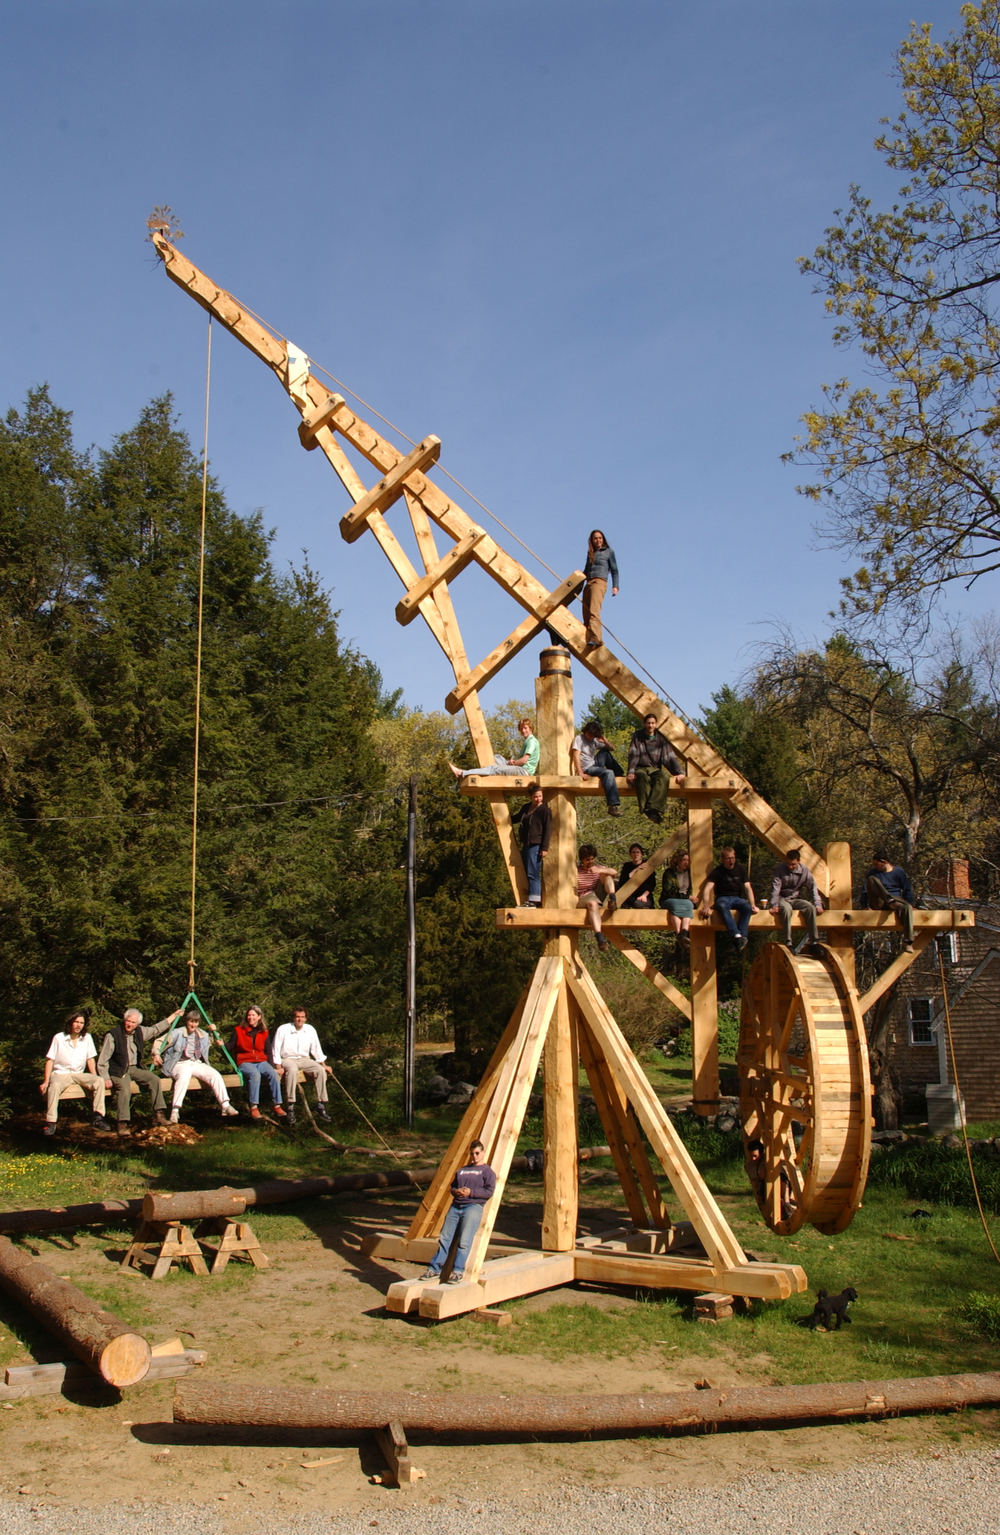 Handshouse Replica of the Perronet Crane